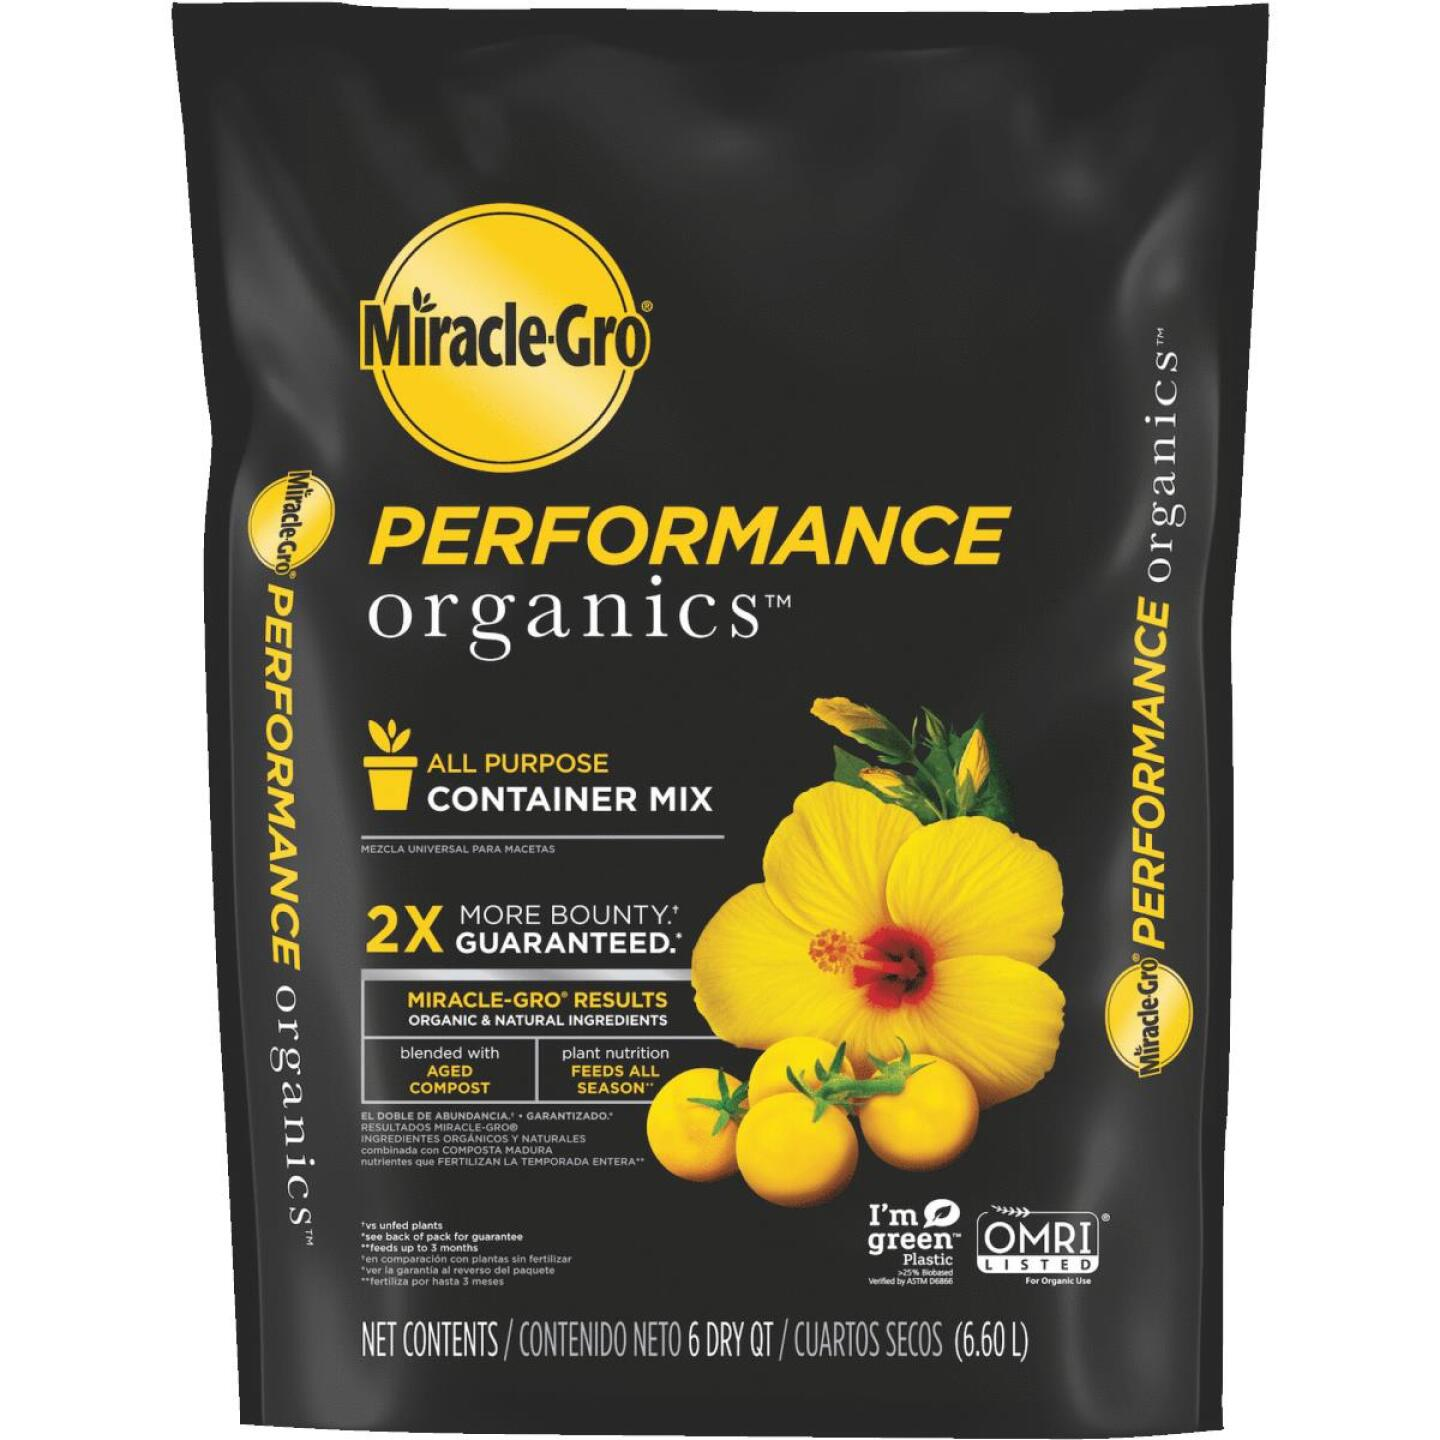 Miracle-Gro Performance Organics 6 Qt. All Purpose Container Mix Image 1